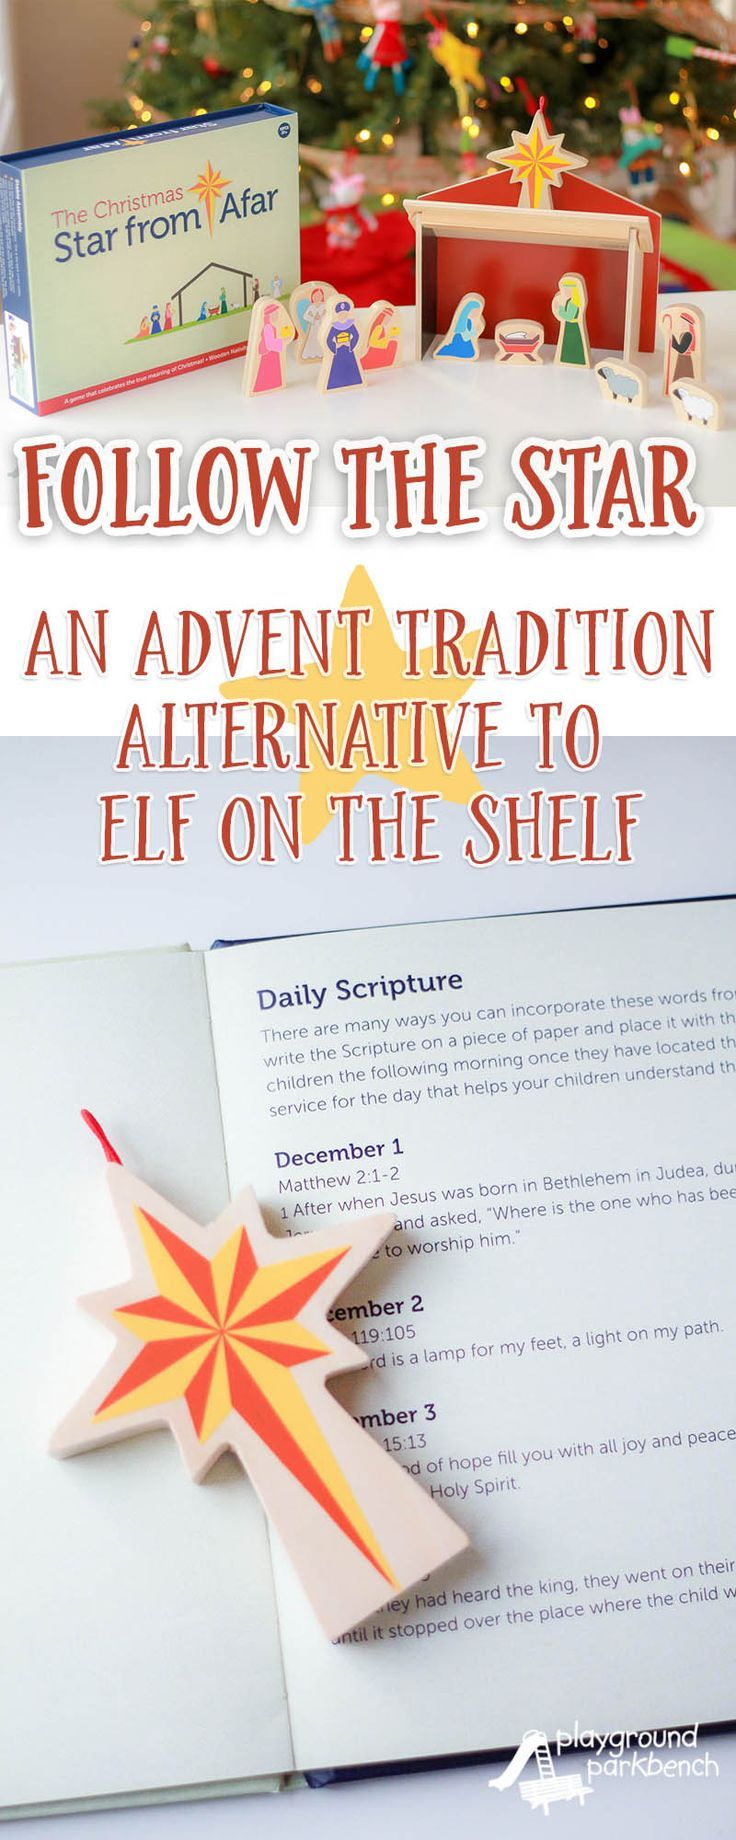 Celebrate the Christmas season with a new Advent tradition... one that celebrates the TRUE meaning of Christmas everyday. The Star from Afar boxed set includes a beautiful nativity scene and a hardcover book that explains how to help the wise men follow t